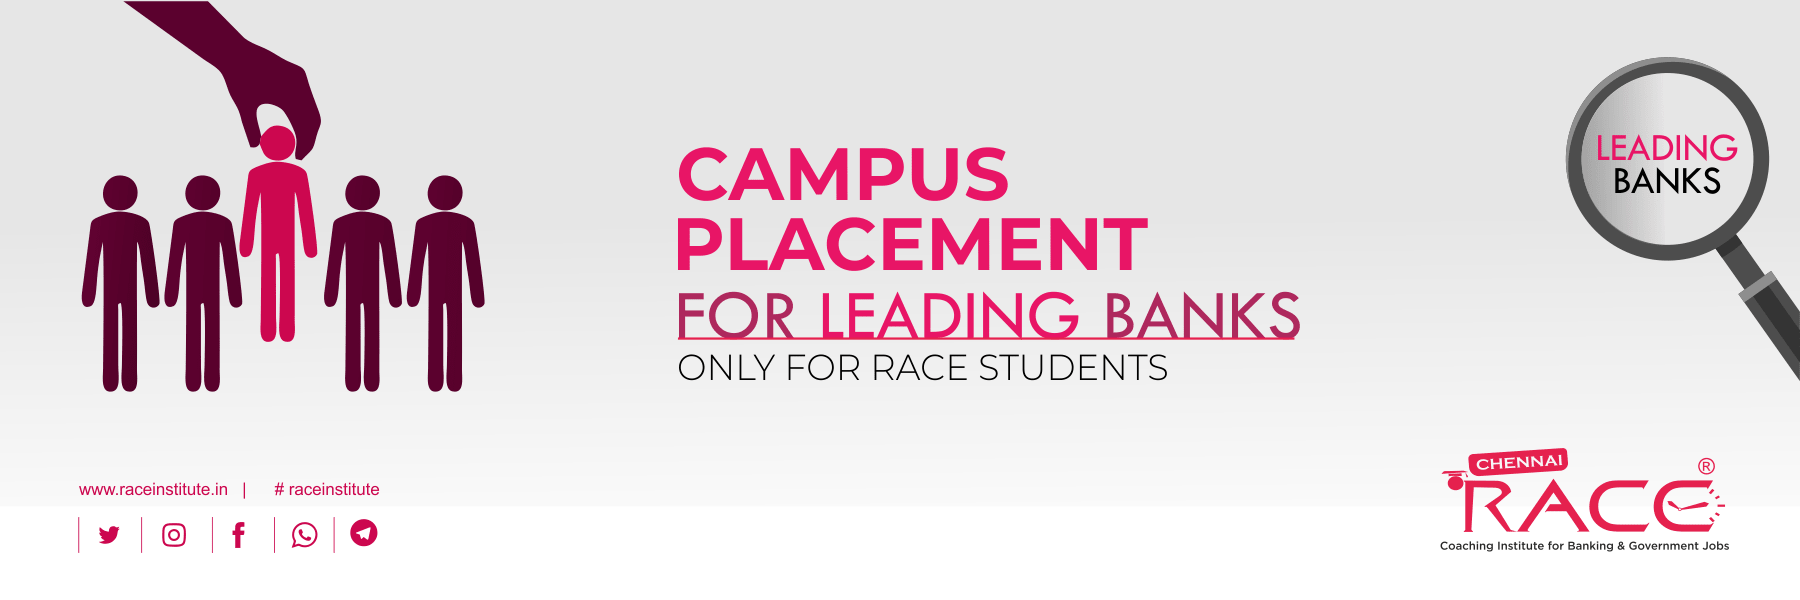 Race Campus placement